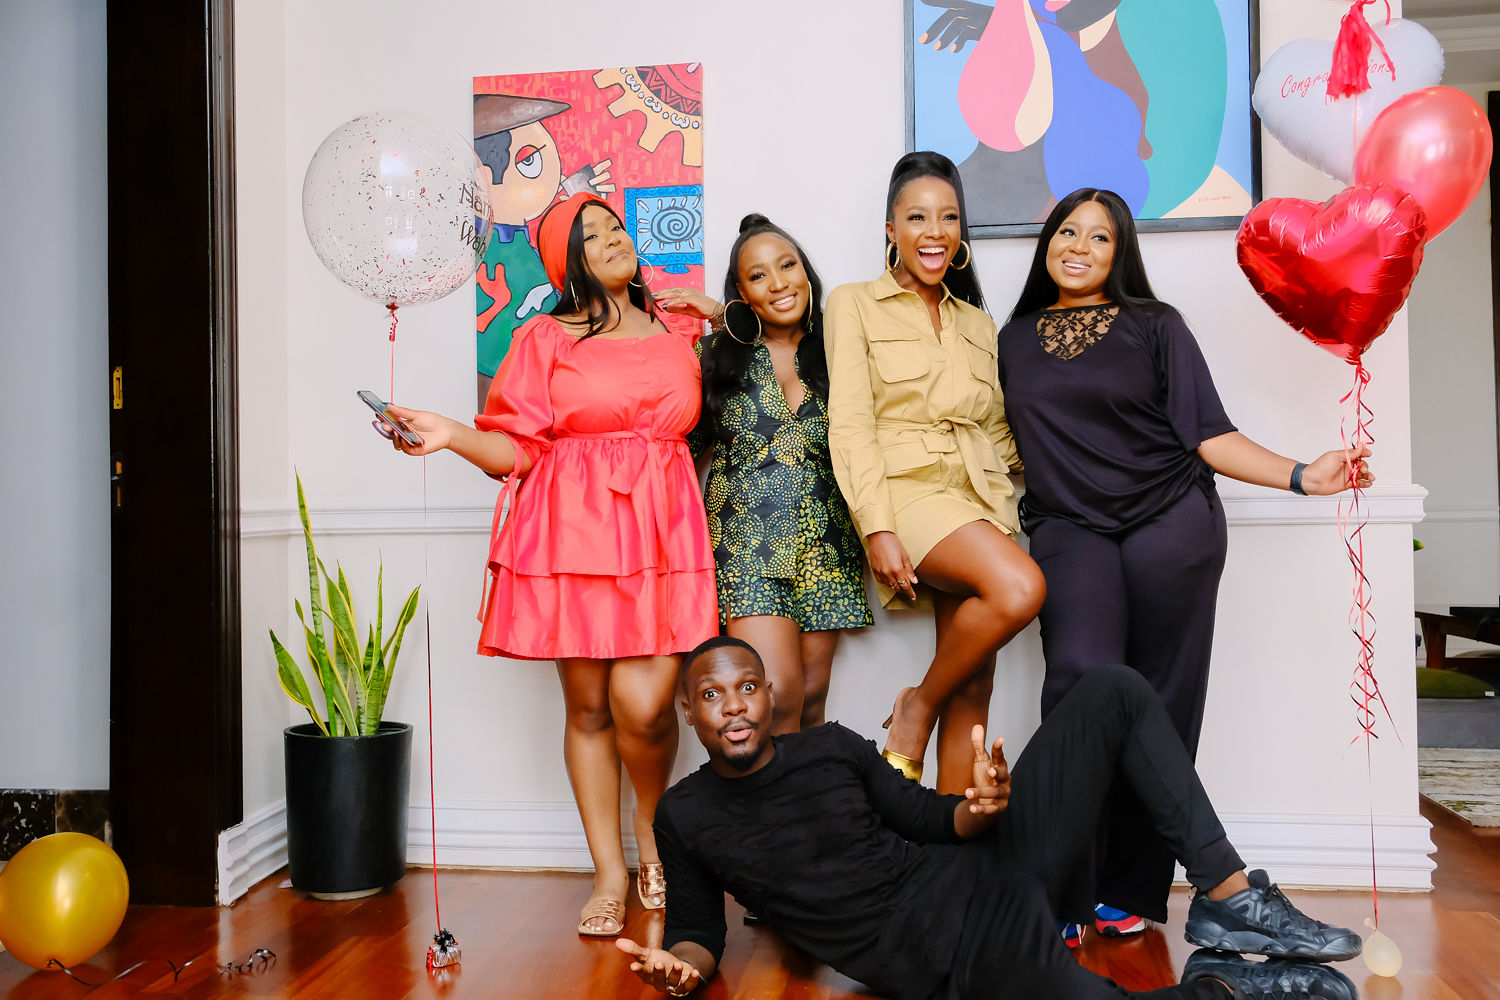 celebrity-house-party-homes-style-rave Ini Dima Okojie Namaste Wahala